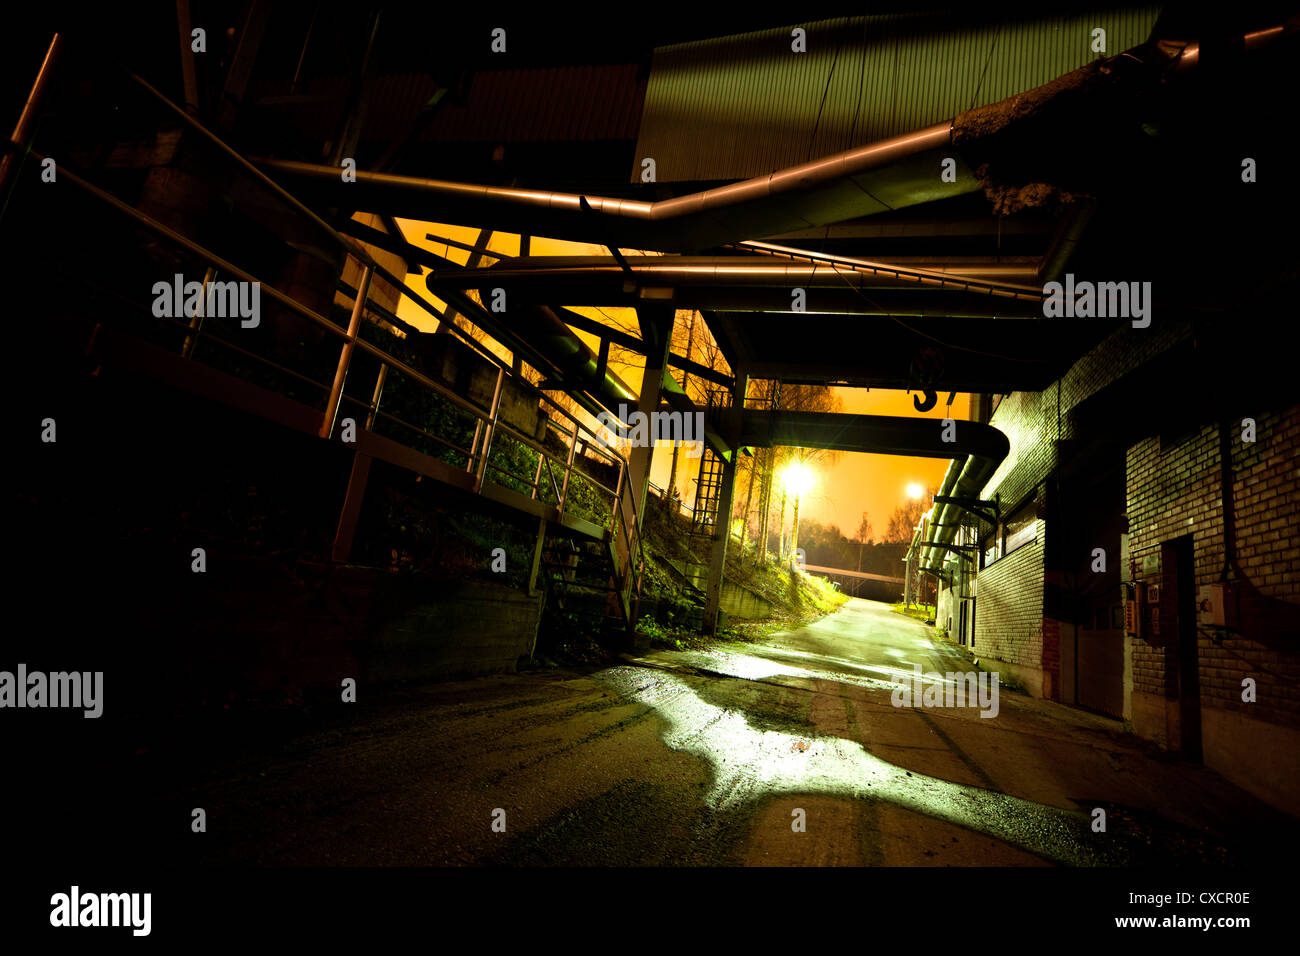 Abandoned industrial site in night after rain - Stock Image